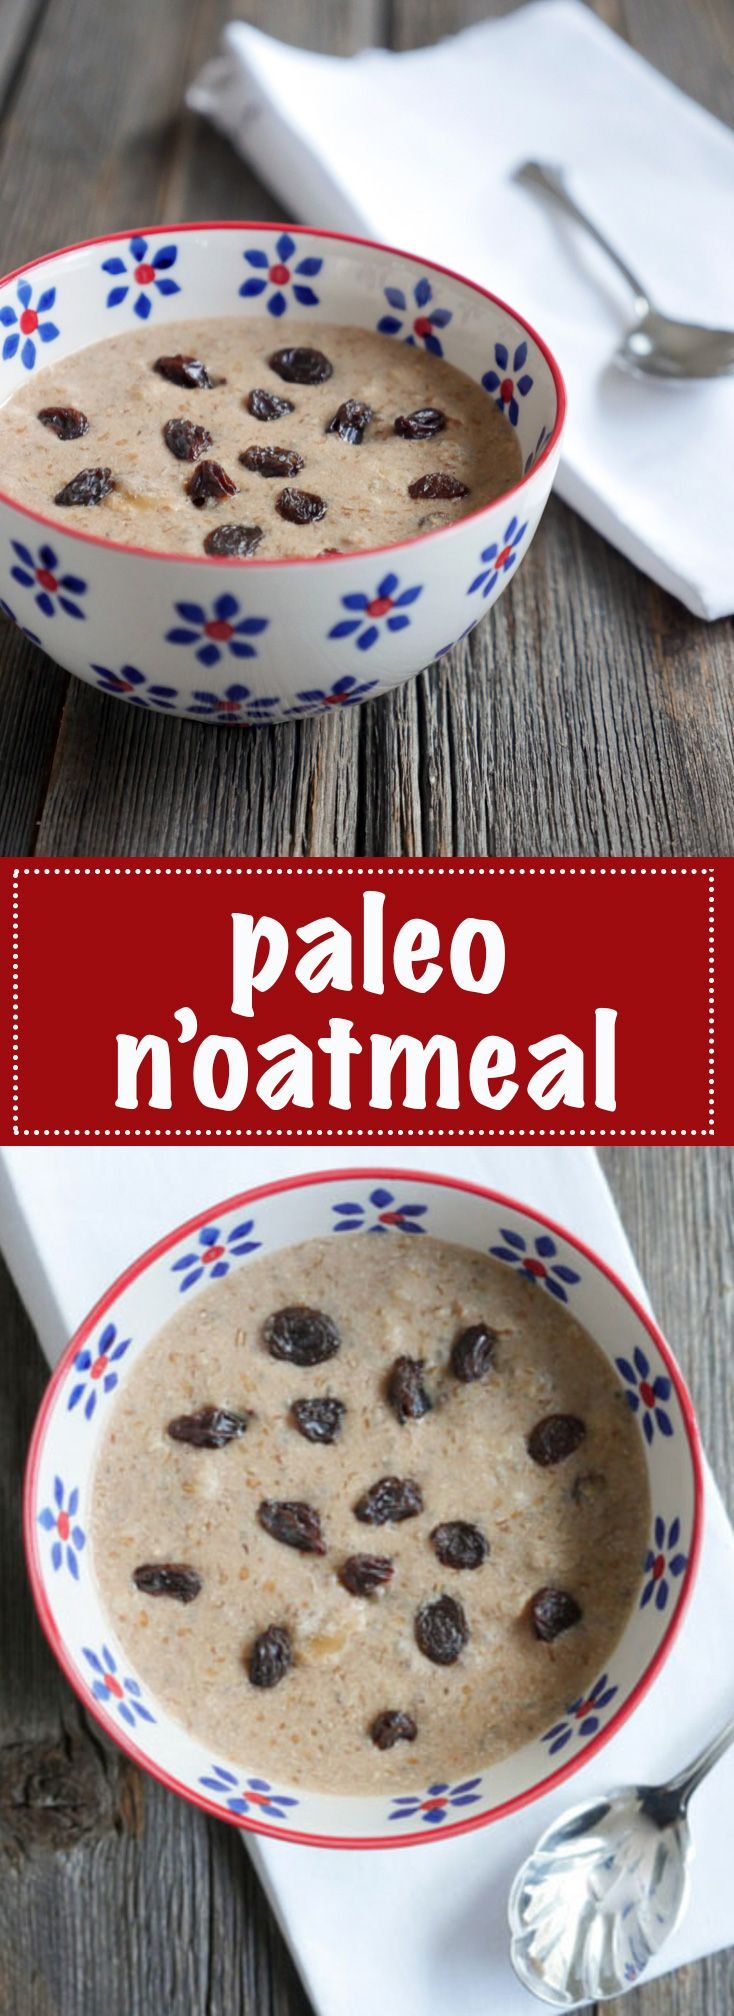 This cinnamon raisin paleo n'oatmeal is SO good! It's easy to make and really comforting.